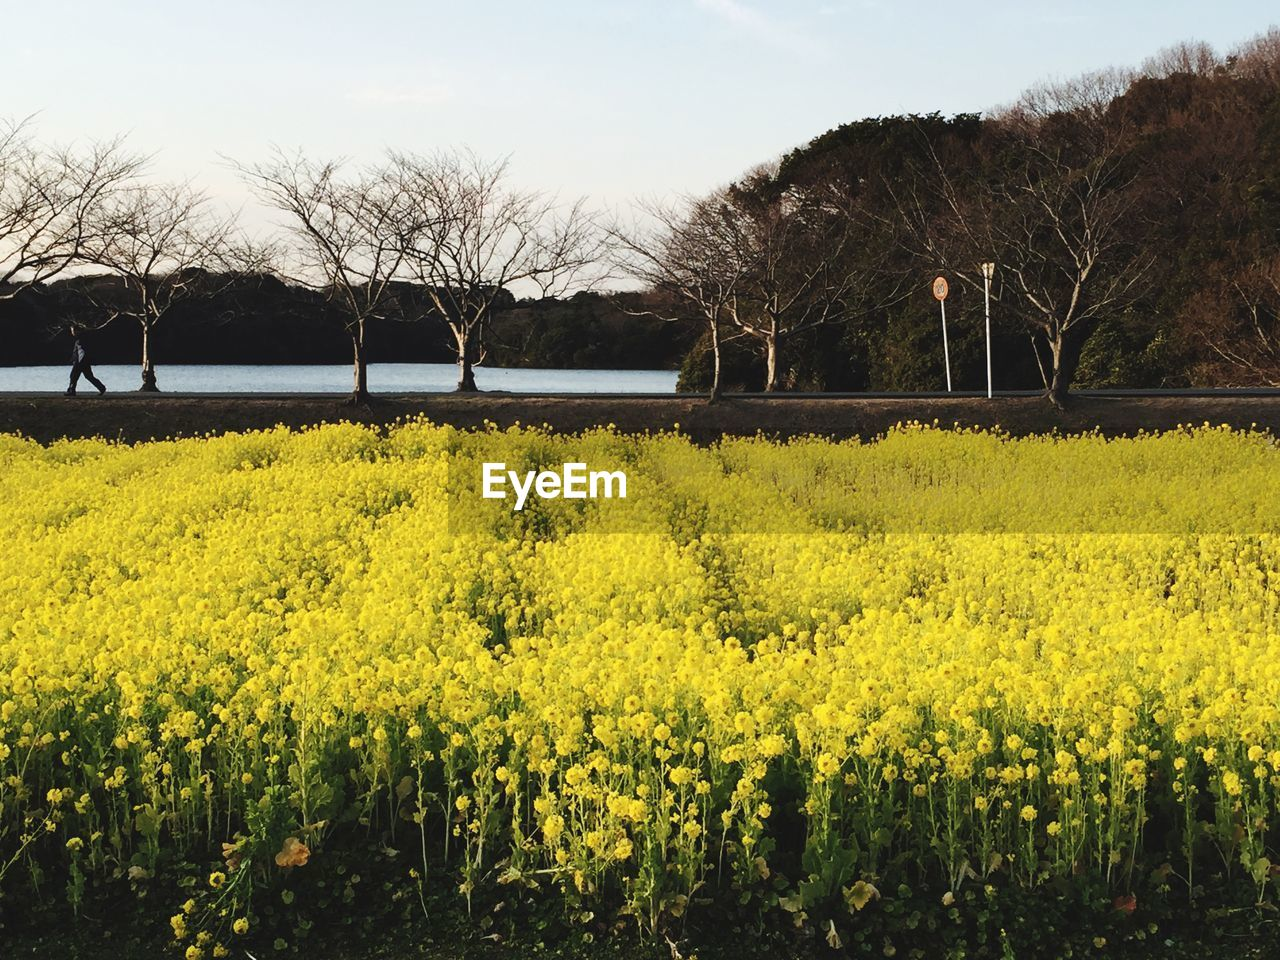 yellow, plant, beauty in nature, growth, sky, flower, landscape, tree, land, tranquil scene, scenics - nature, flowering plant, tranquility, field, agriculture, nature, day, environment, rural scene, no people, outdoors, springtime, flowerbed